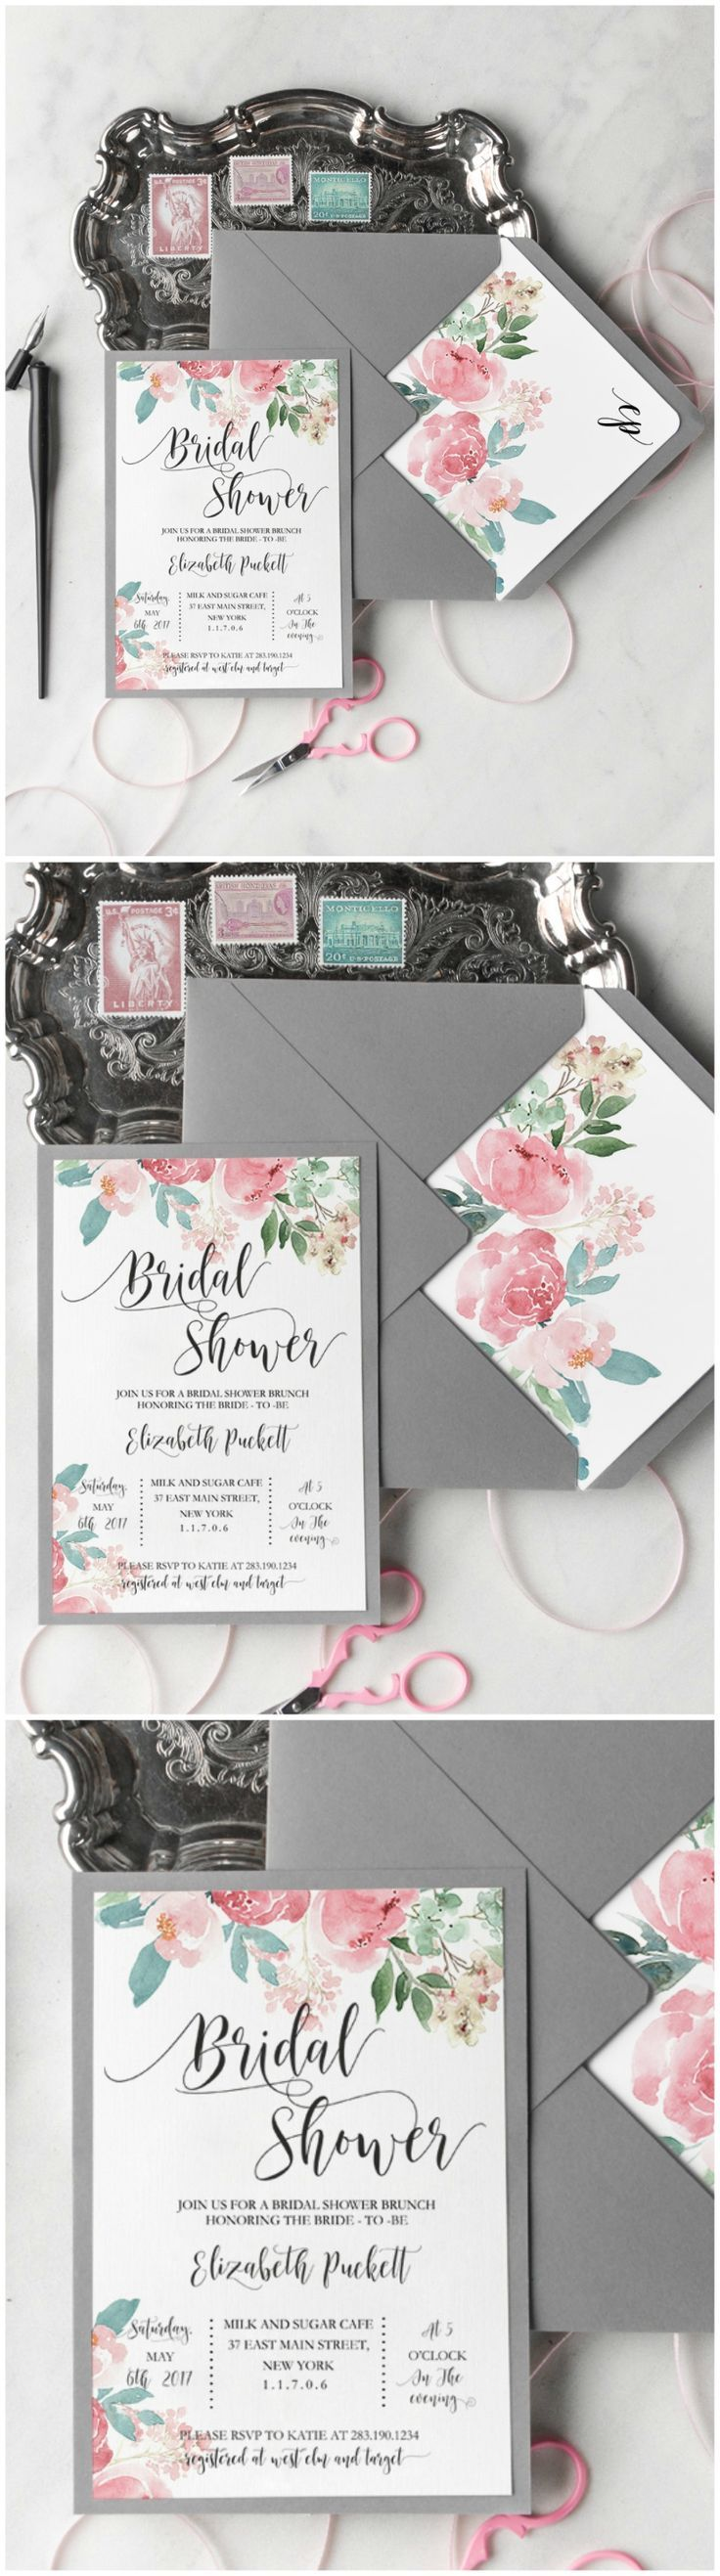 recipe themed bridal shower invitation wording%0A Bridal shower invitations with watercolor flowers